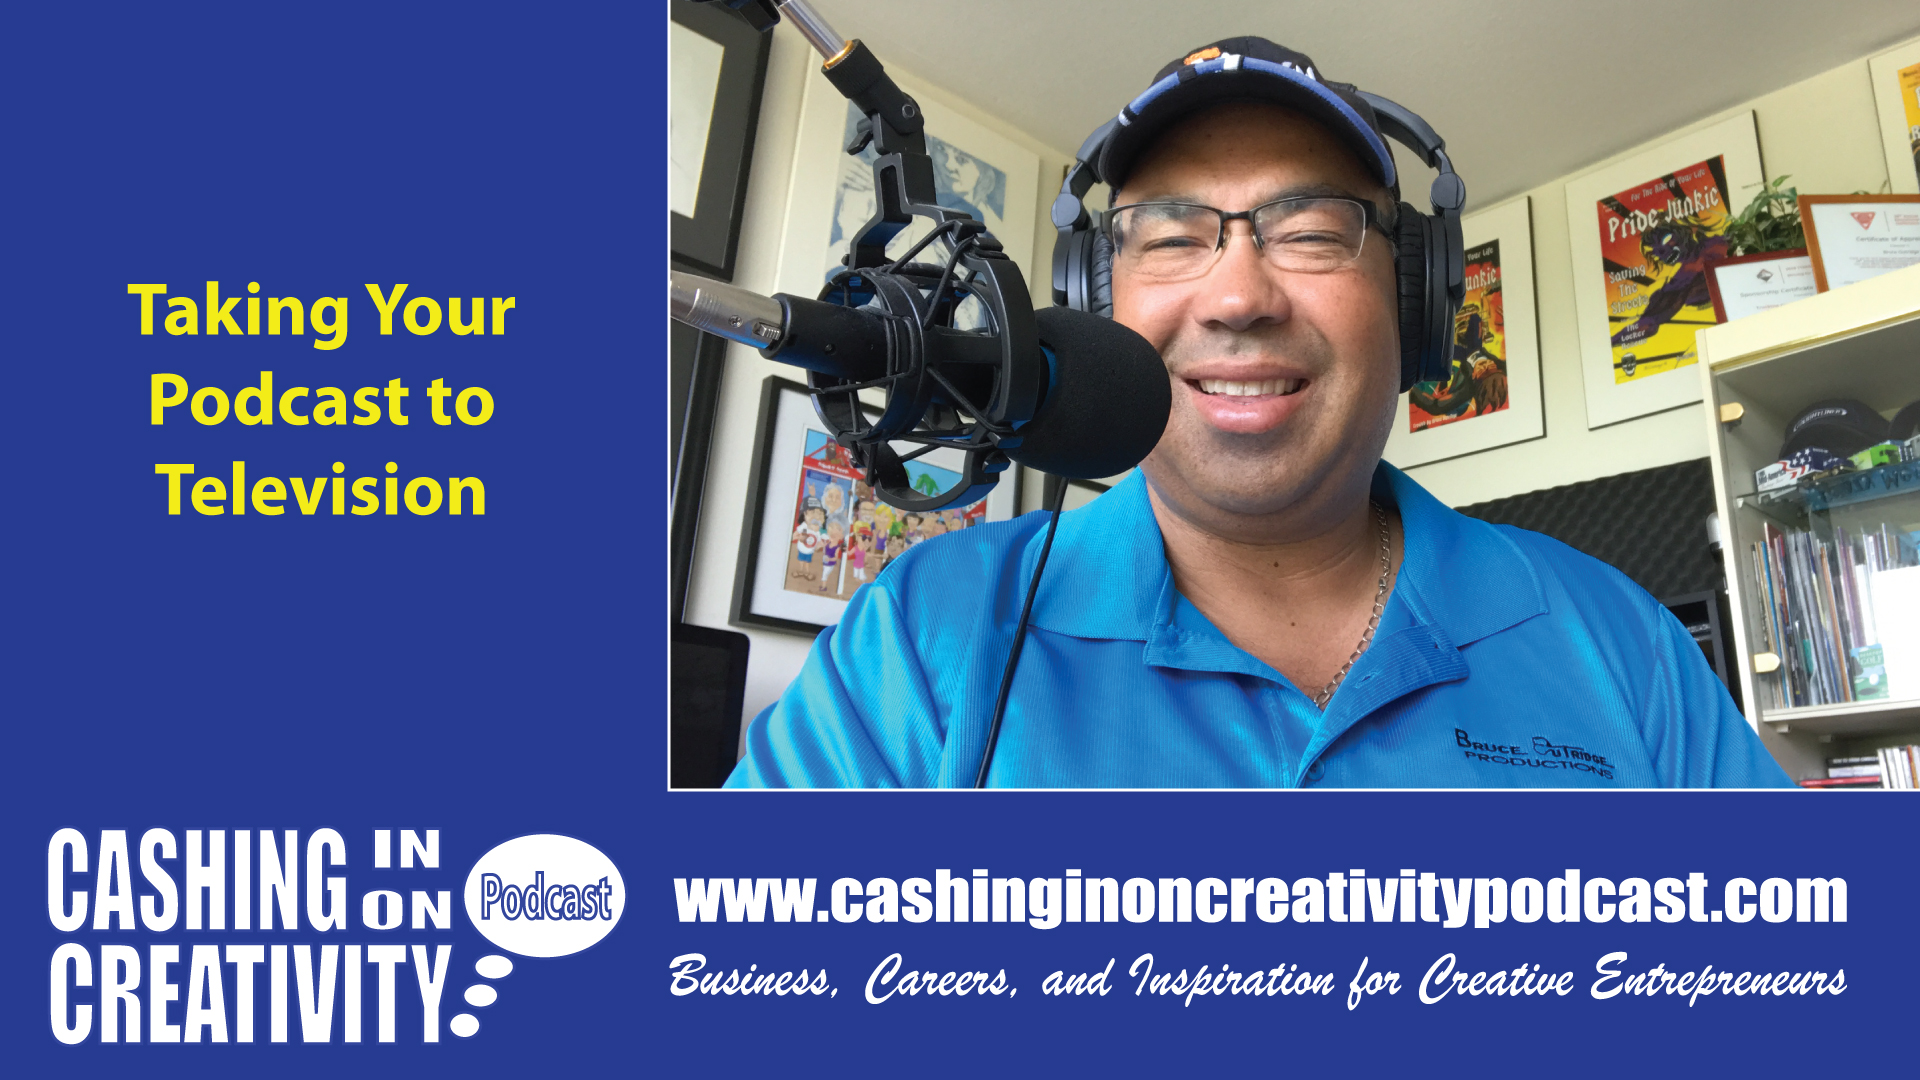 CC261 Taking the Cashing on on Creativity Podcast to Television